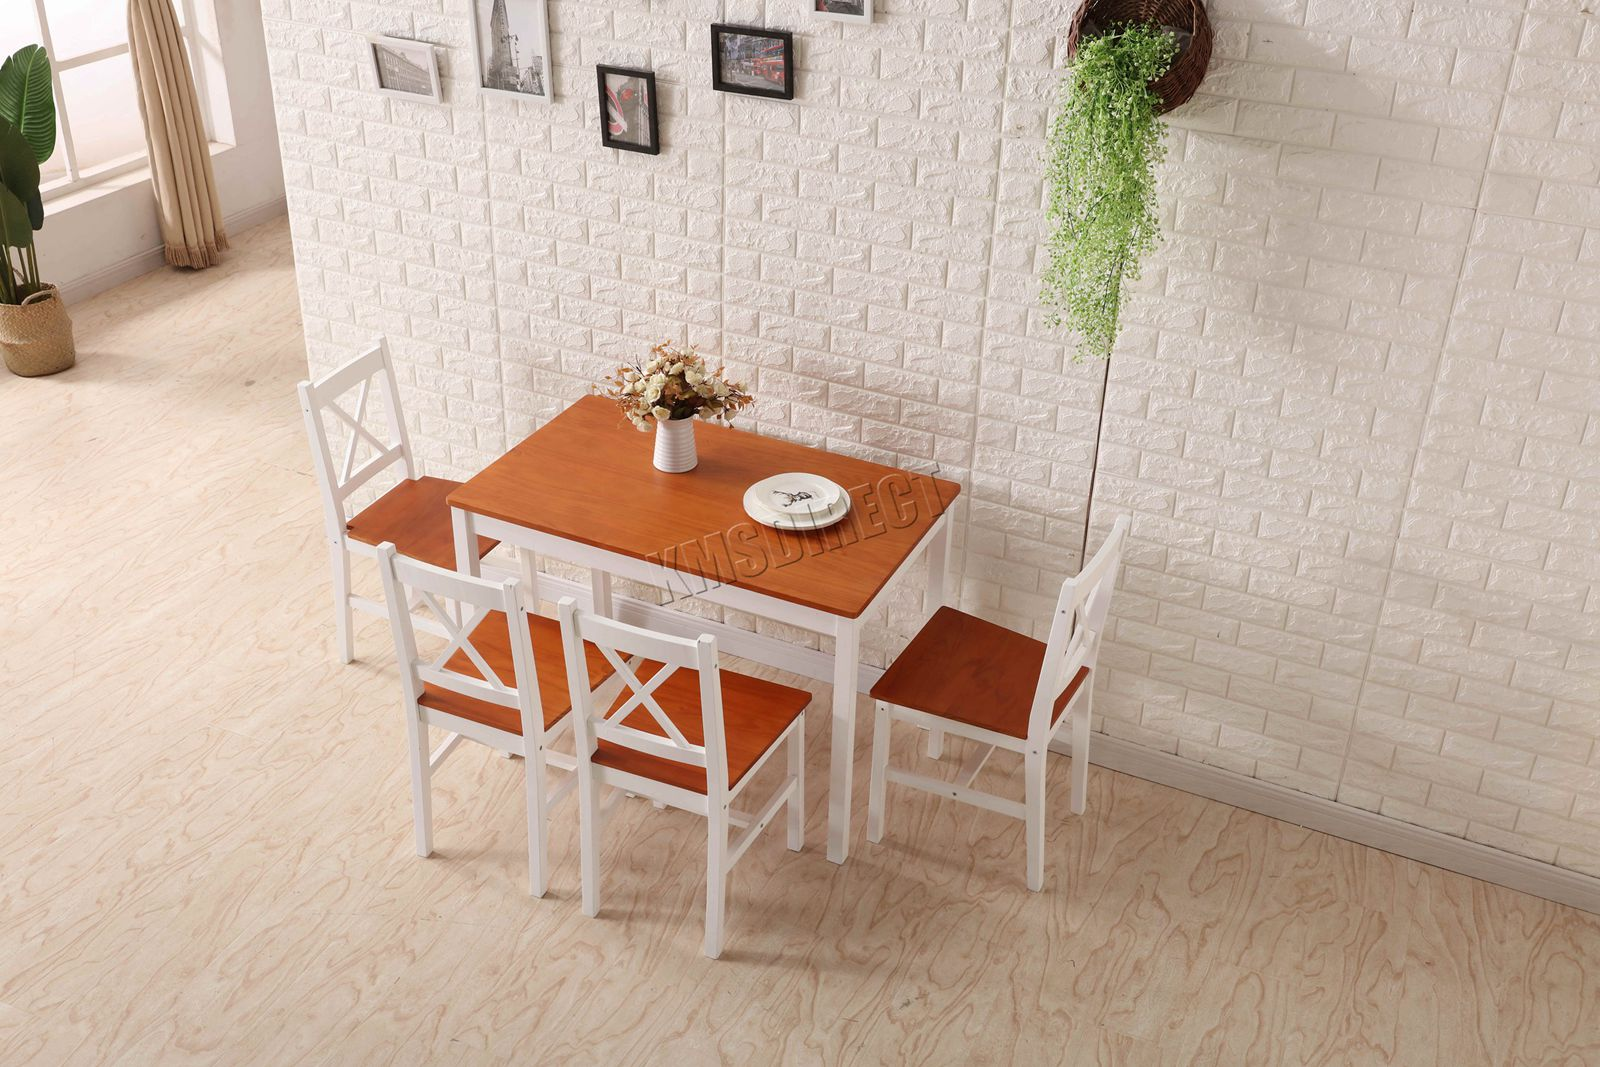 Details About Westwood Quality Solid Wooden Dining Table And 4 Chairs Set Kitchen Home Ds03